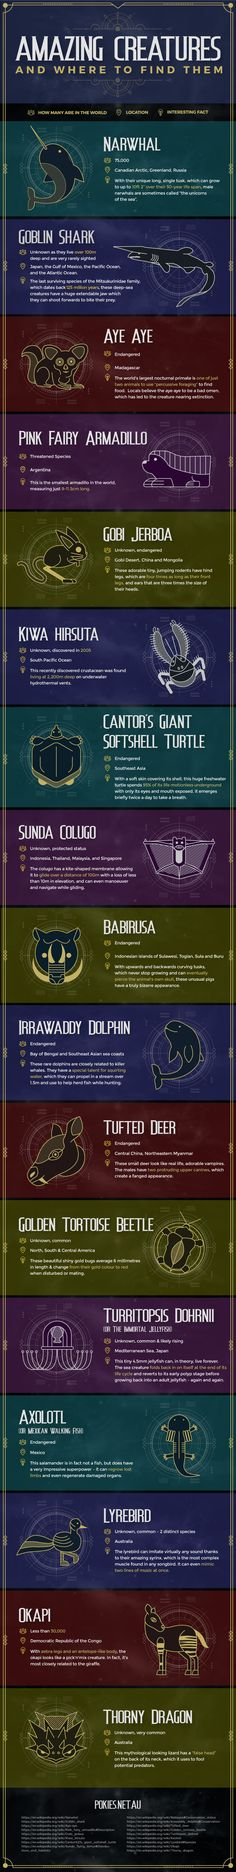 Inspired by Fantastic Beasts and Where to Find Them, here's an infographic that showcases the most mind-blowing animals hidden across the globe.